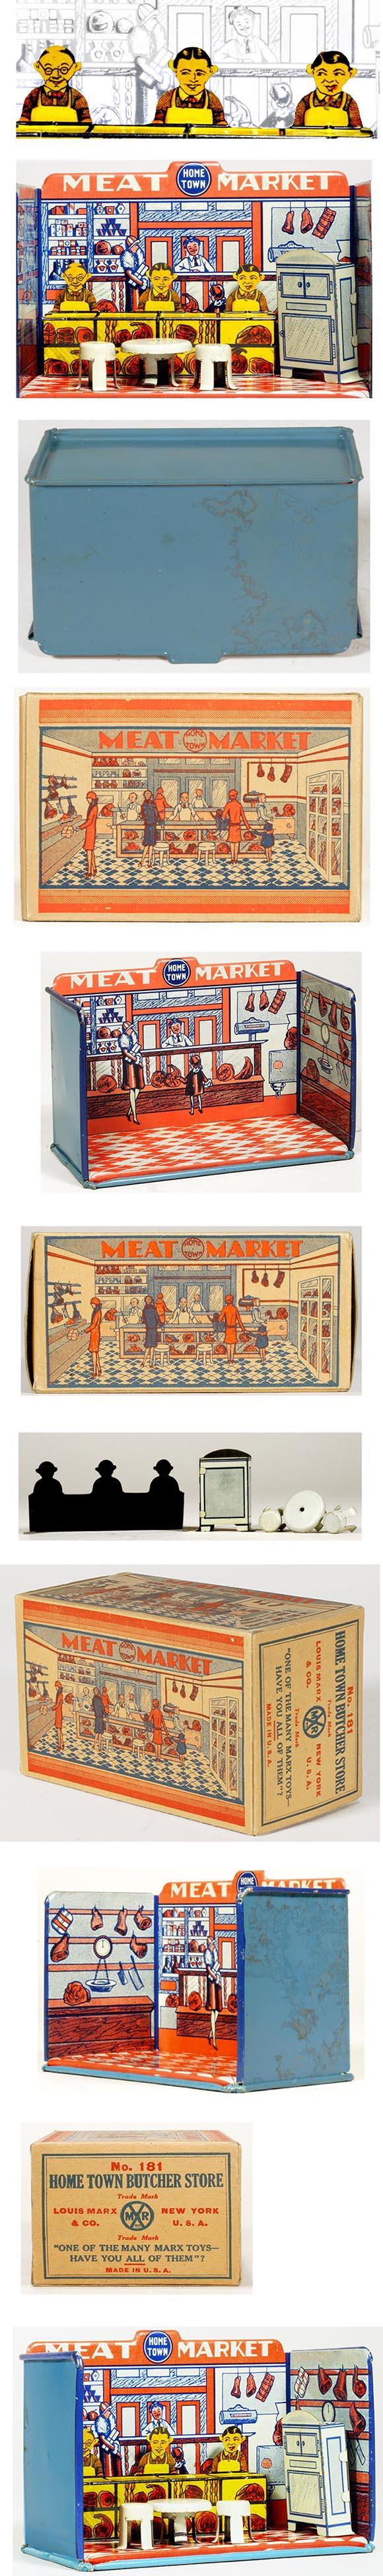 1930 Marx, Home Town Meat Market in Original Box